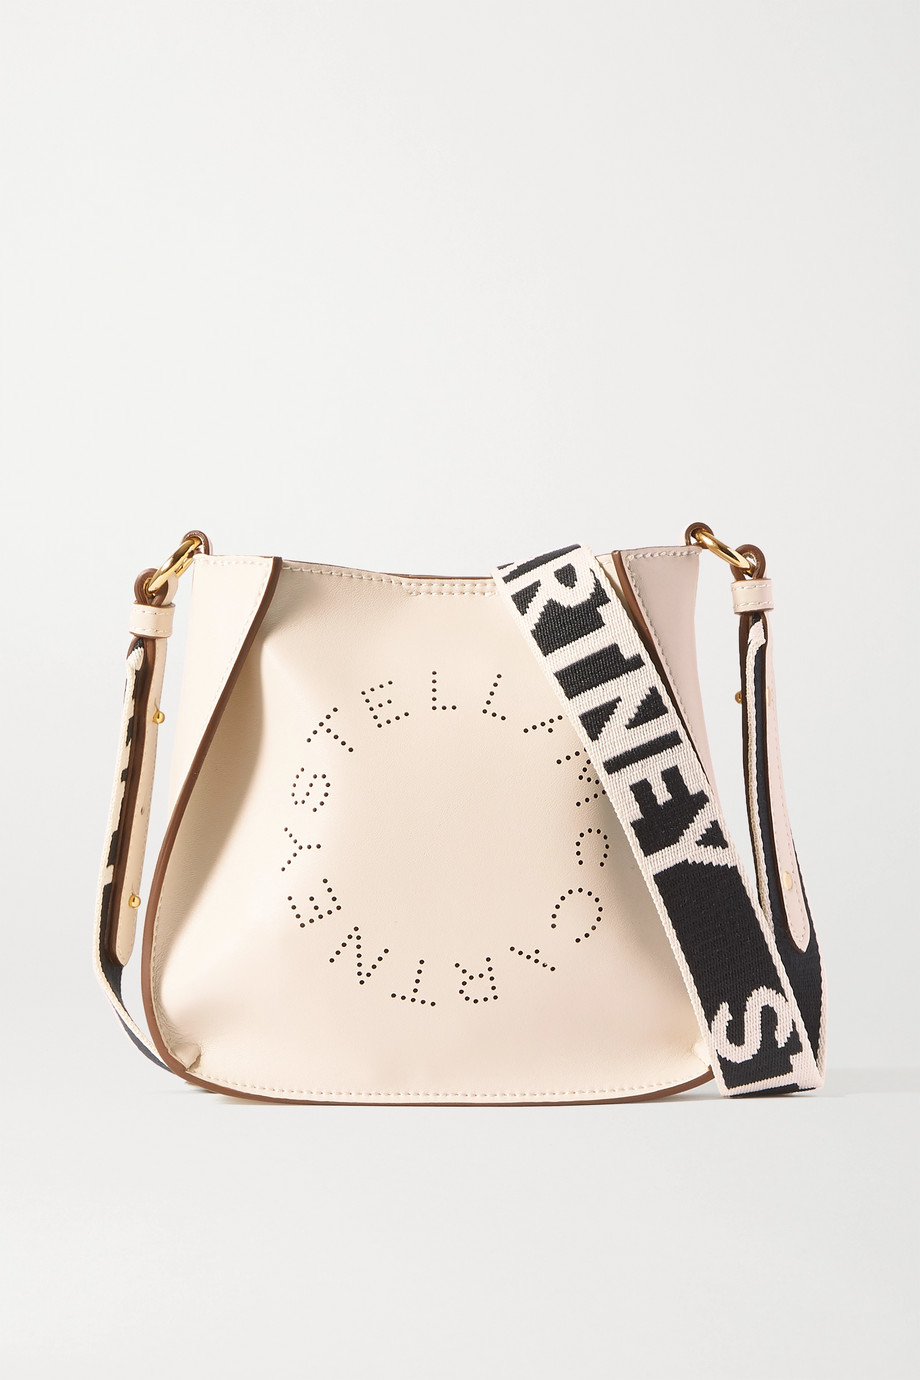 Stella McCartney + NET SUSTAIN small perforated vegetarian leather shoulder bag